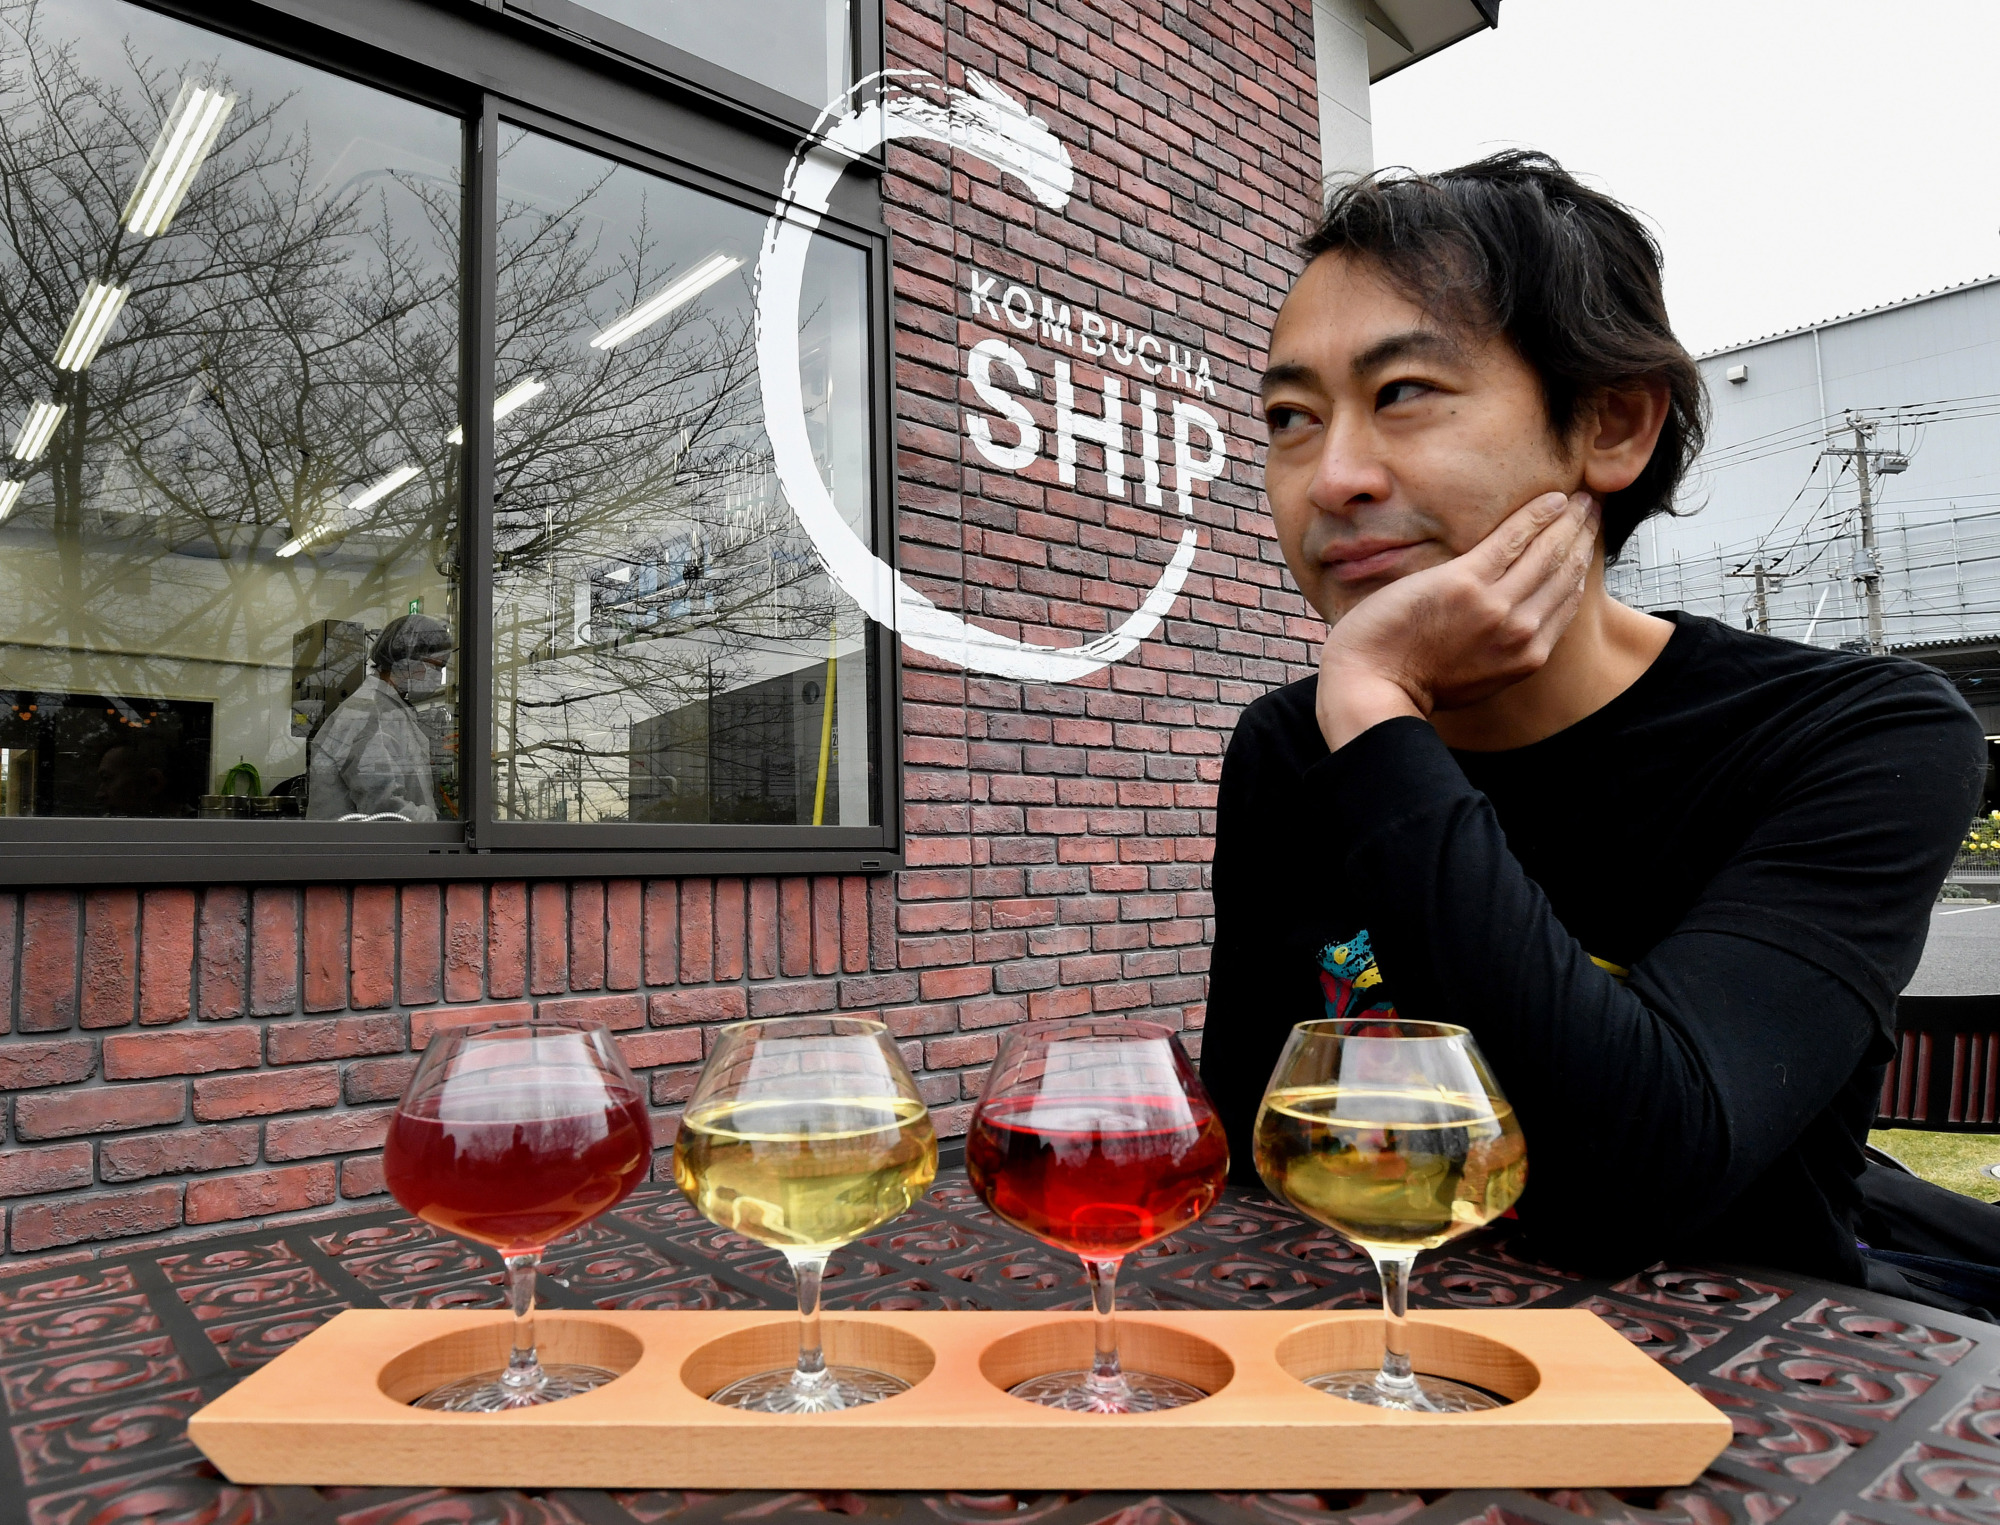 Kantaro Oizumi, president and CEO of Oizumi Kojo, sits outside his kombucha brewery. Captivated by the health drink, Oizumi decided to launch Japan's first full-scale kombucha brewery in 2016 with the help of brewer Yuji Shimada.